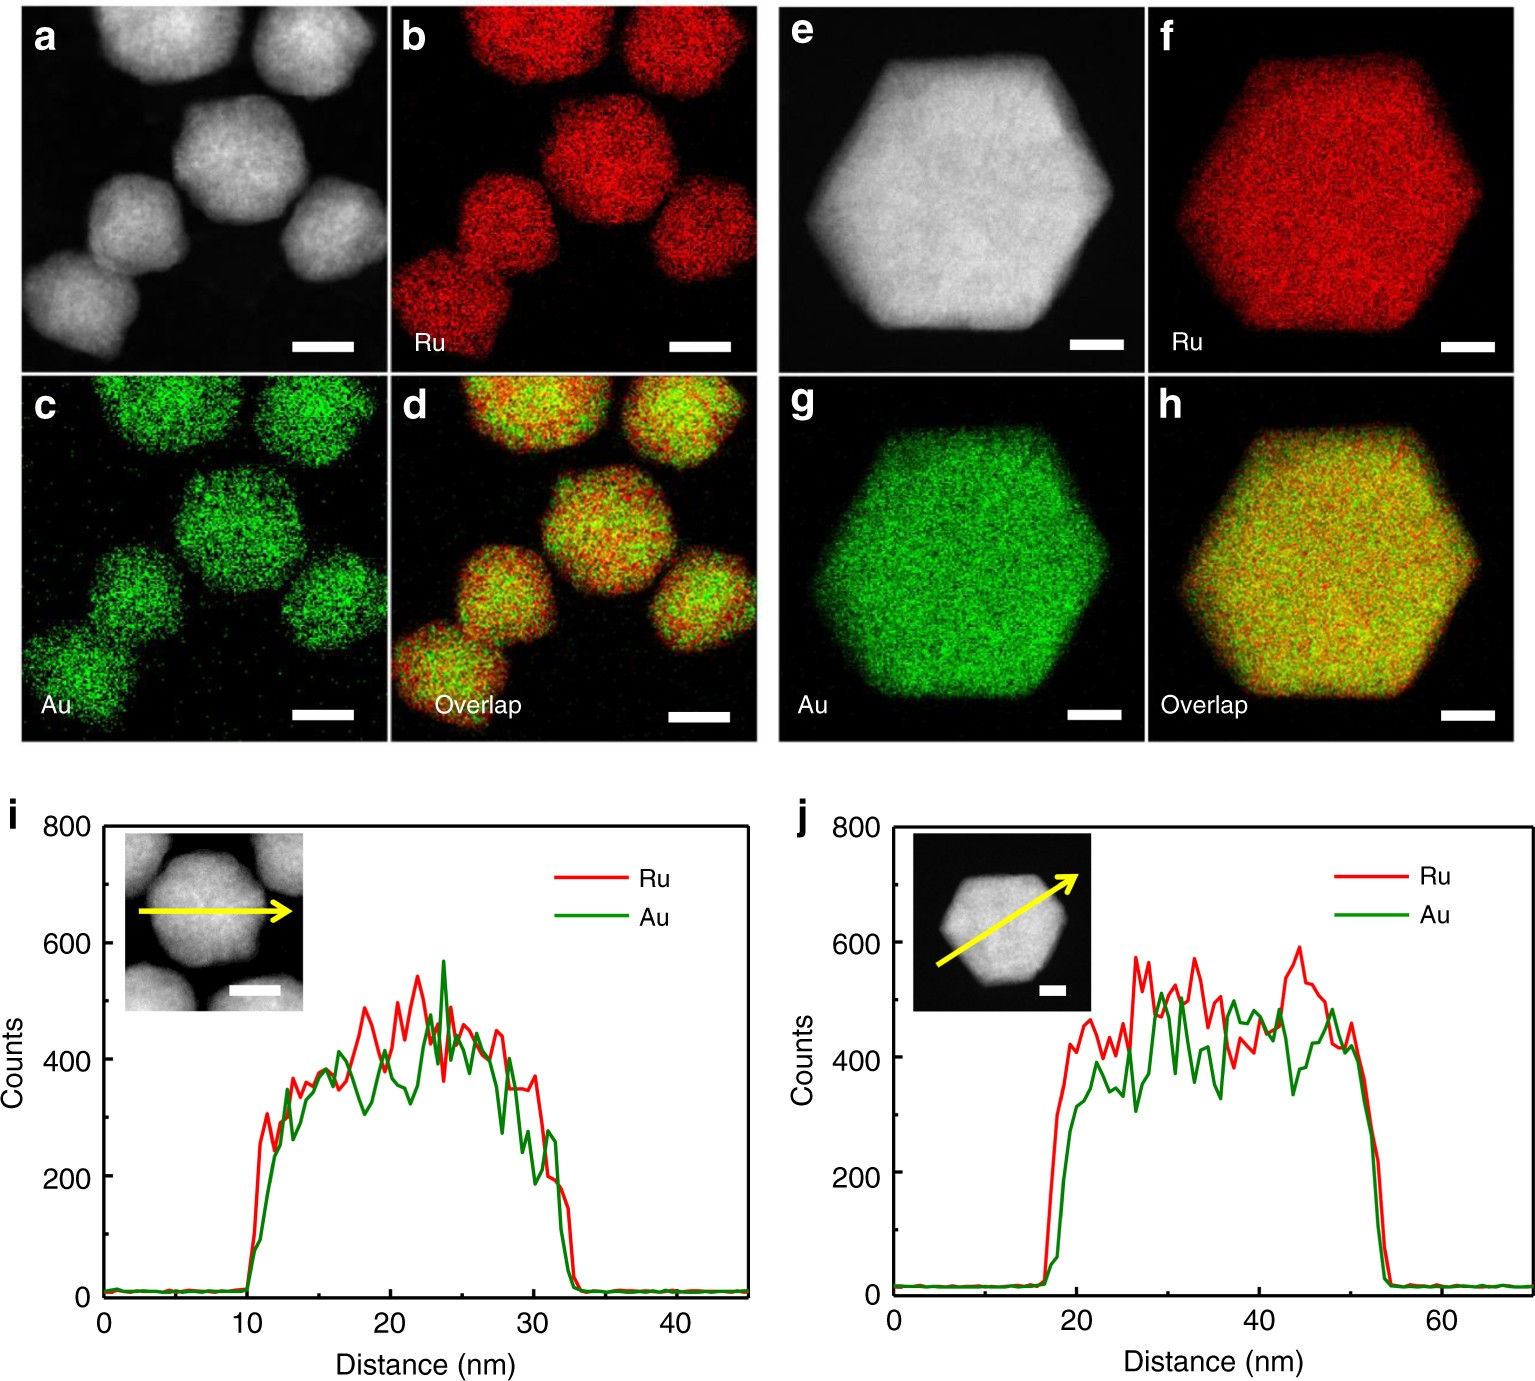 Selective Control Of Fcc And Hcp Crystal Structures In Auru Solid Crystalcontrolledfm Solution Alloy Nanoparticles Nature Communications